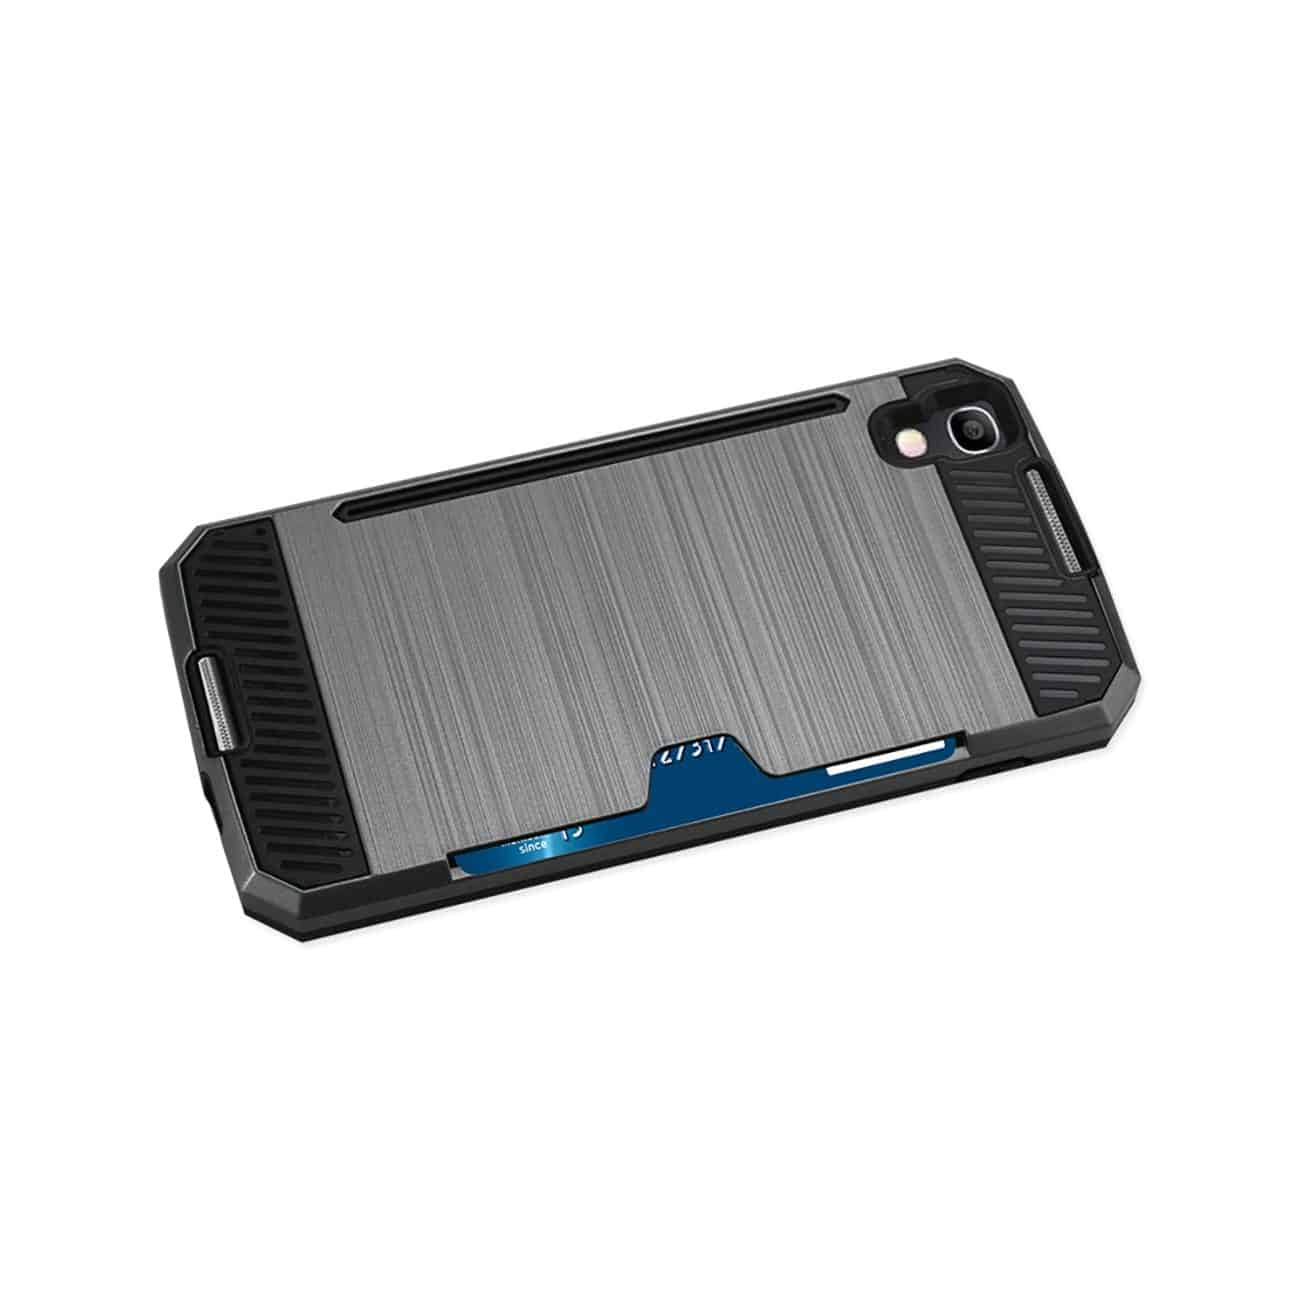 ALCATEL ONE TOUCH IDOL 4 SLIM ARMOR HYBRID CASE WITH CARD HOLDER IN GRAY